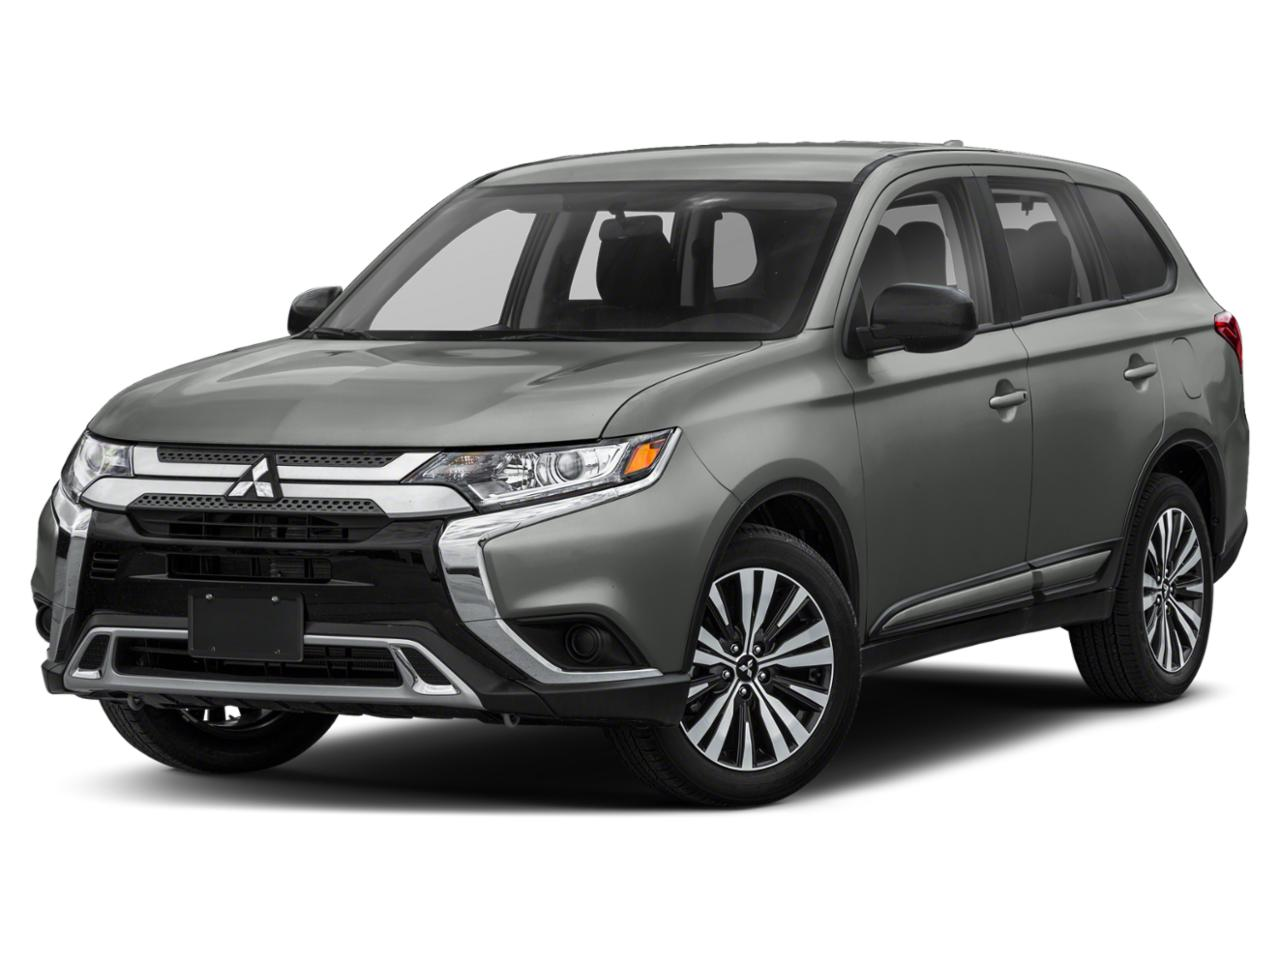 2020 Mitsubishi Outlander Vehicle Photo in Green Bay, WI 54302